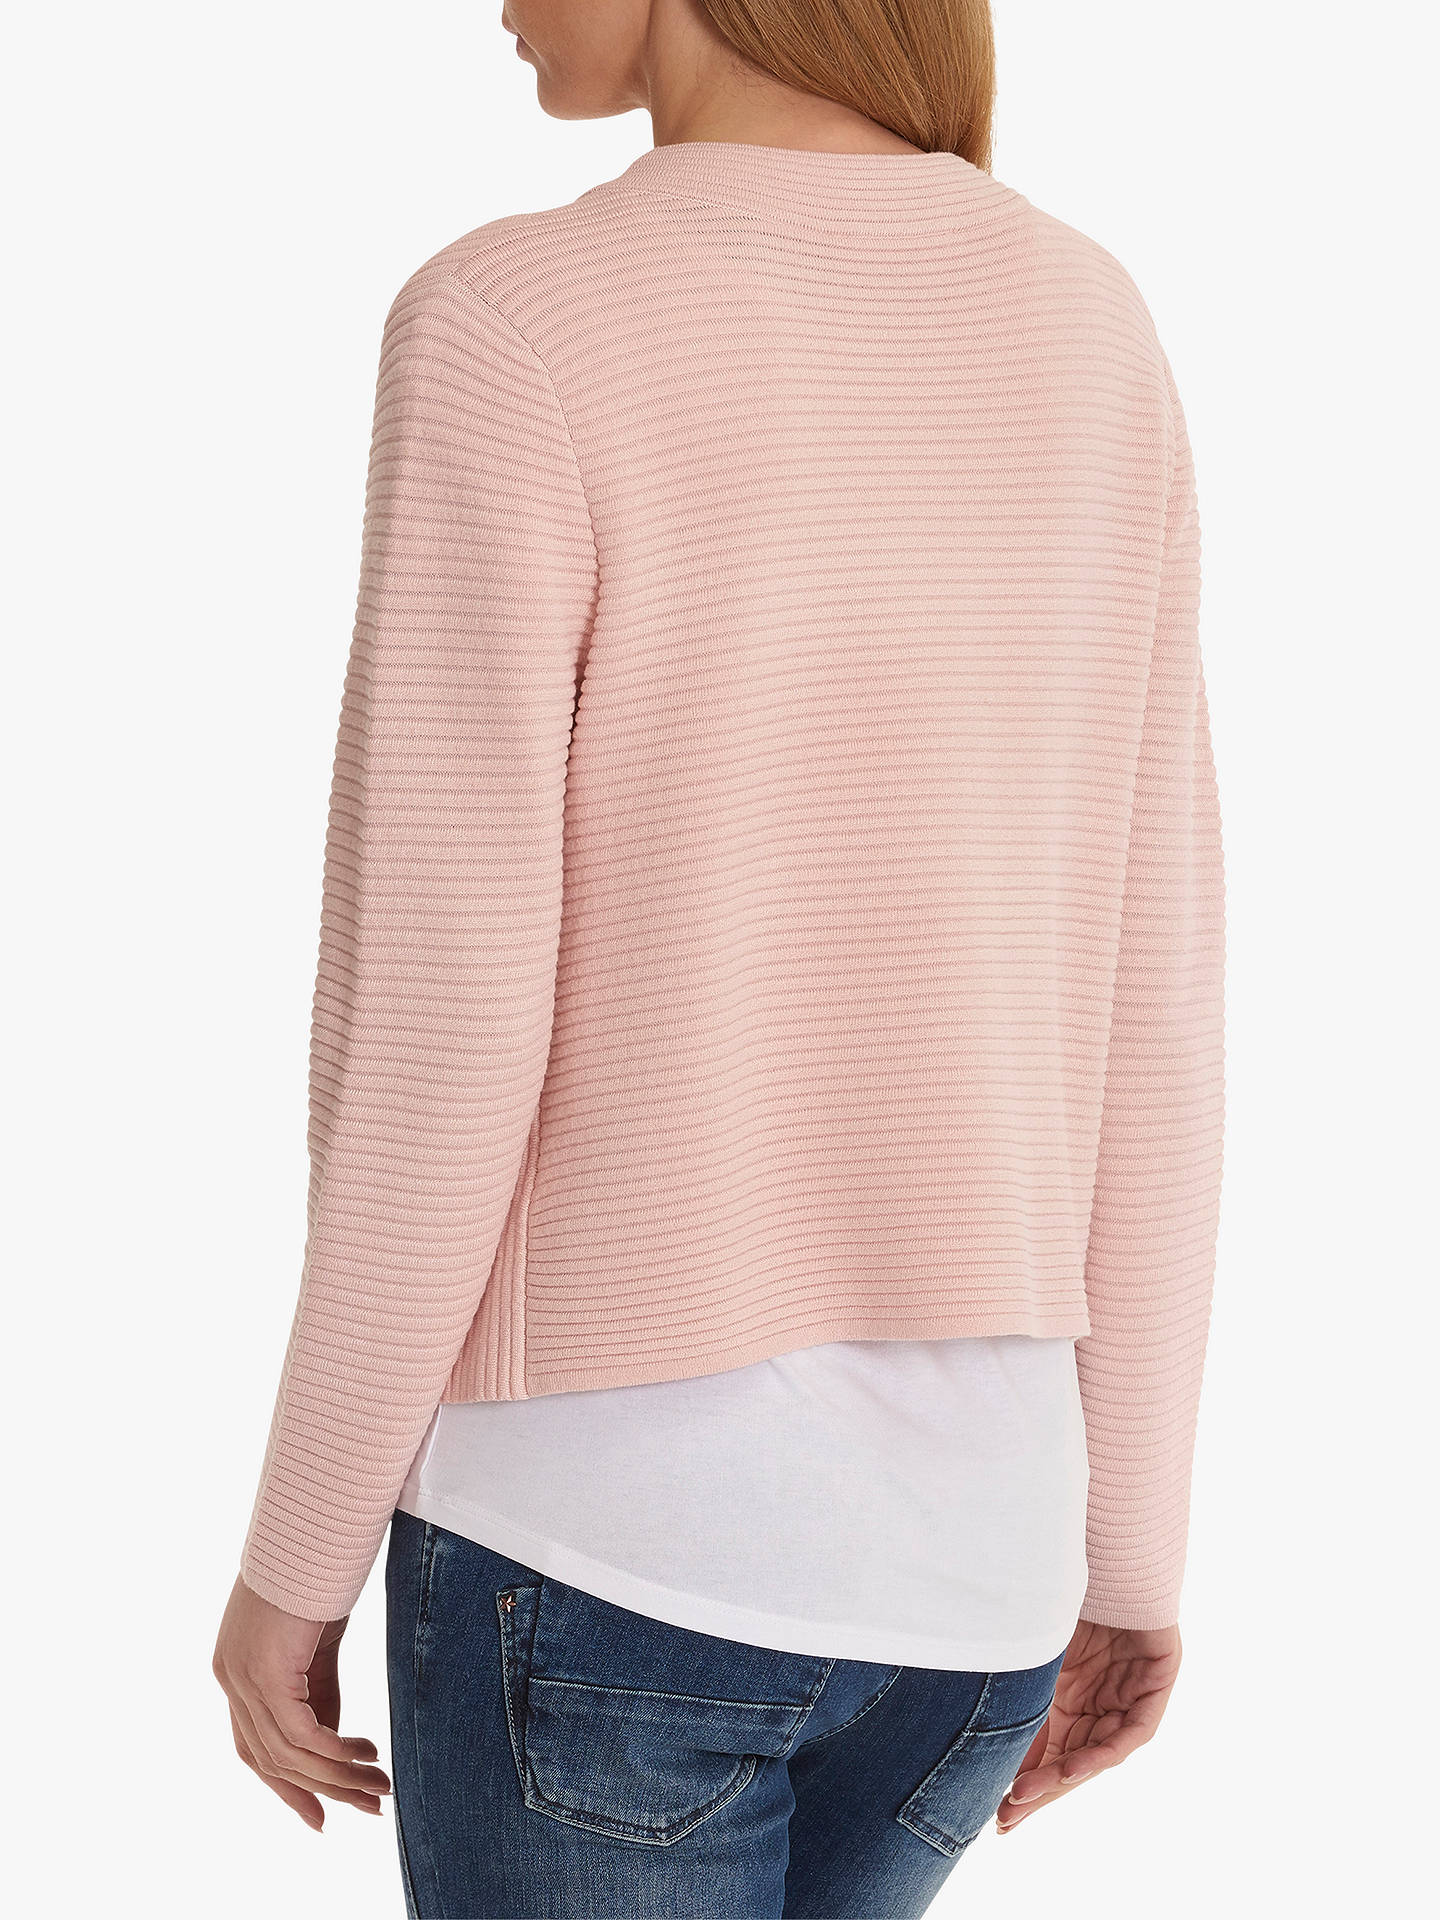 Buy Betty Barclay Ribbed Knit Cardigan, Rose Blush, 10 Online at johnlewis.com